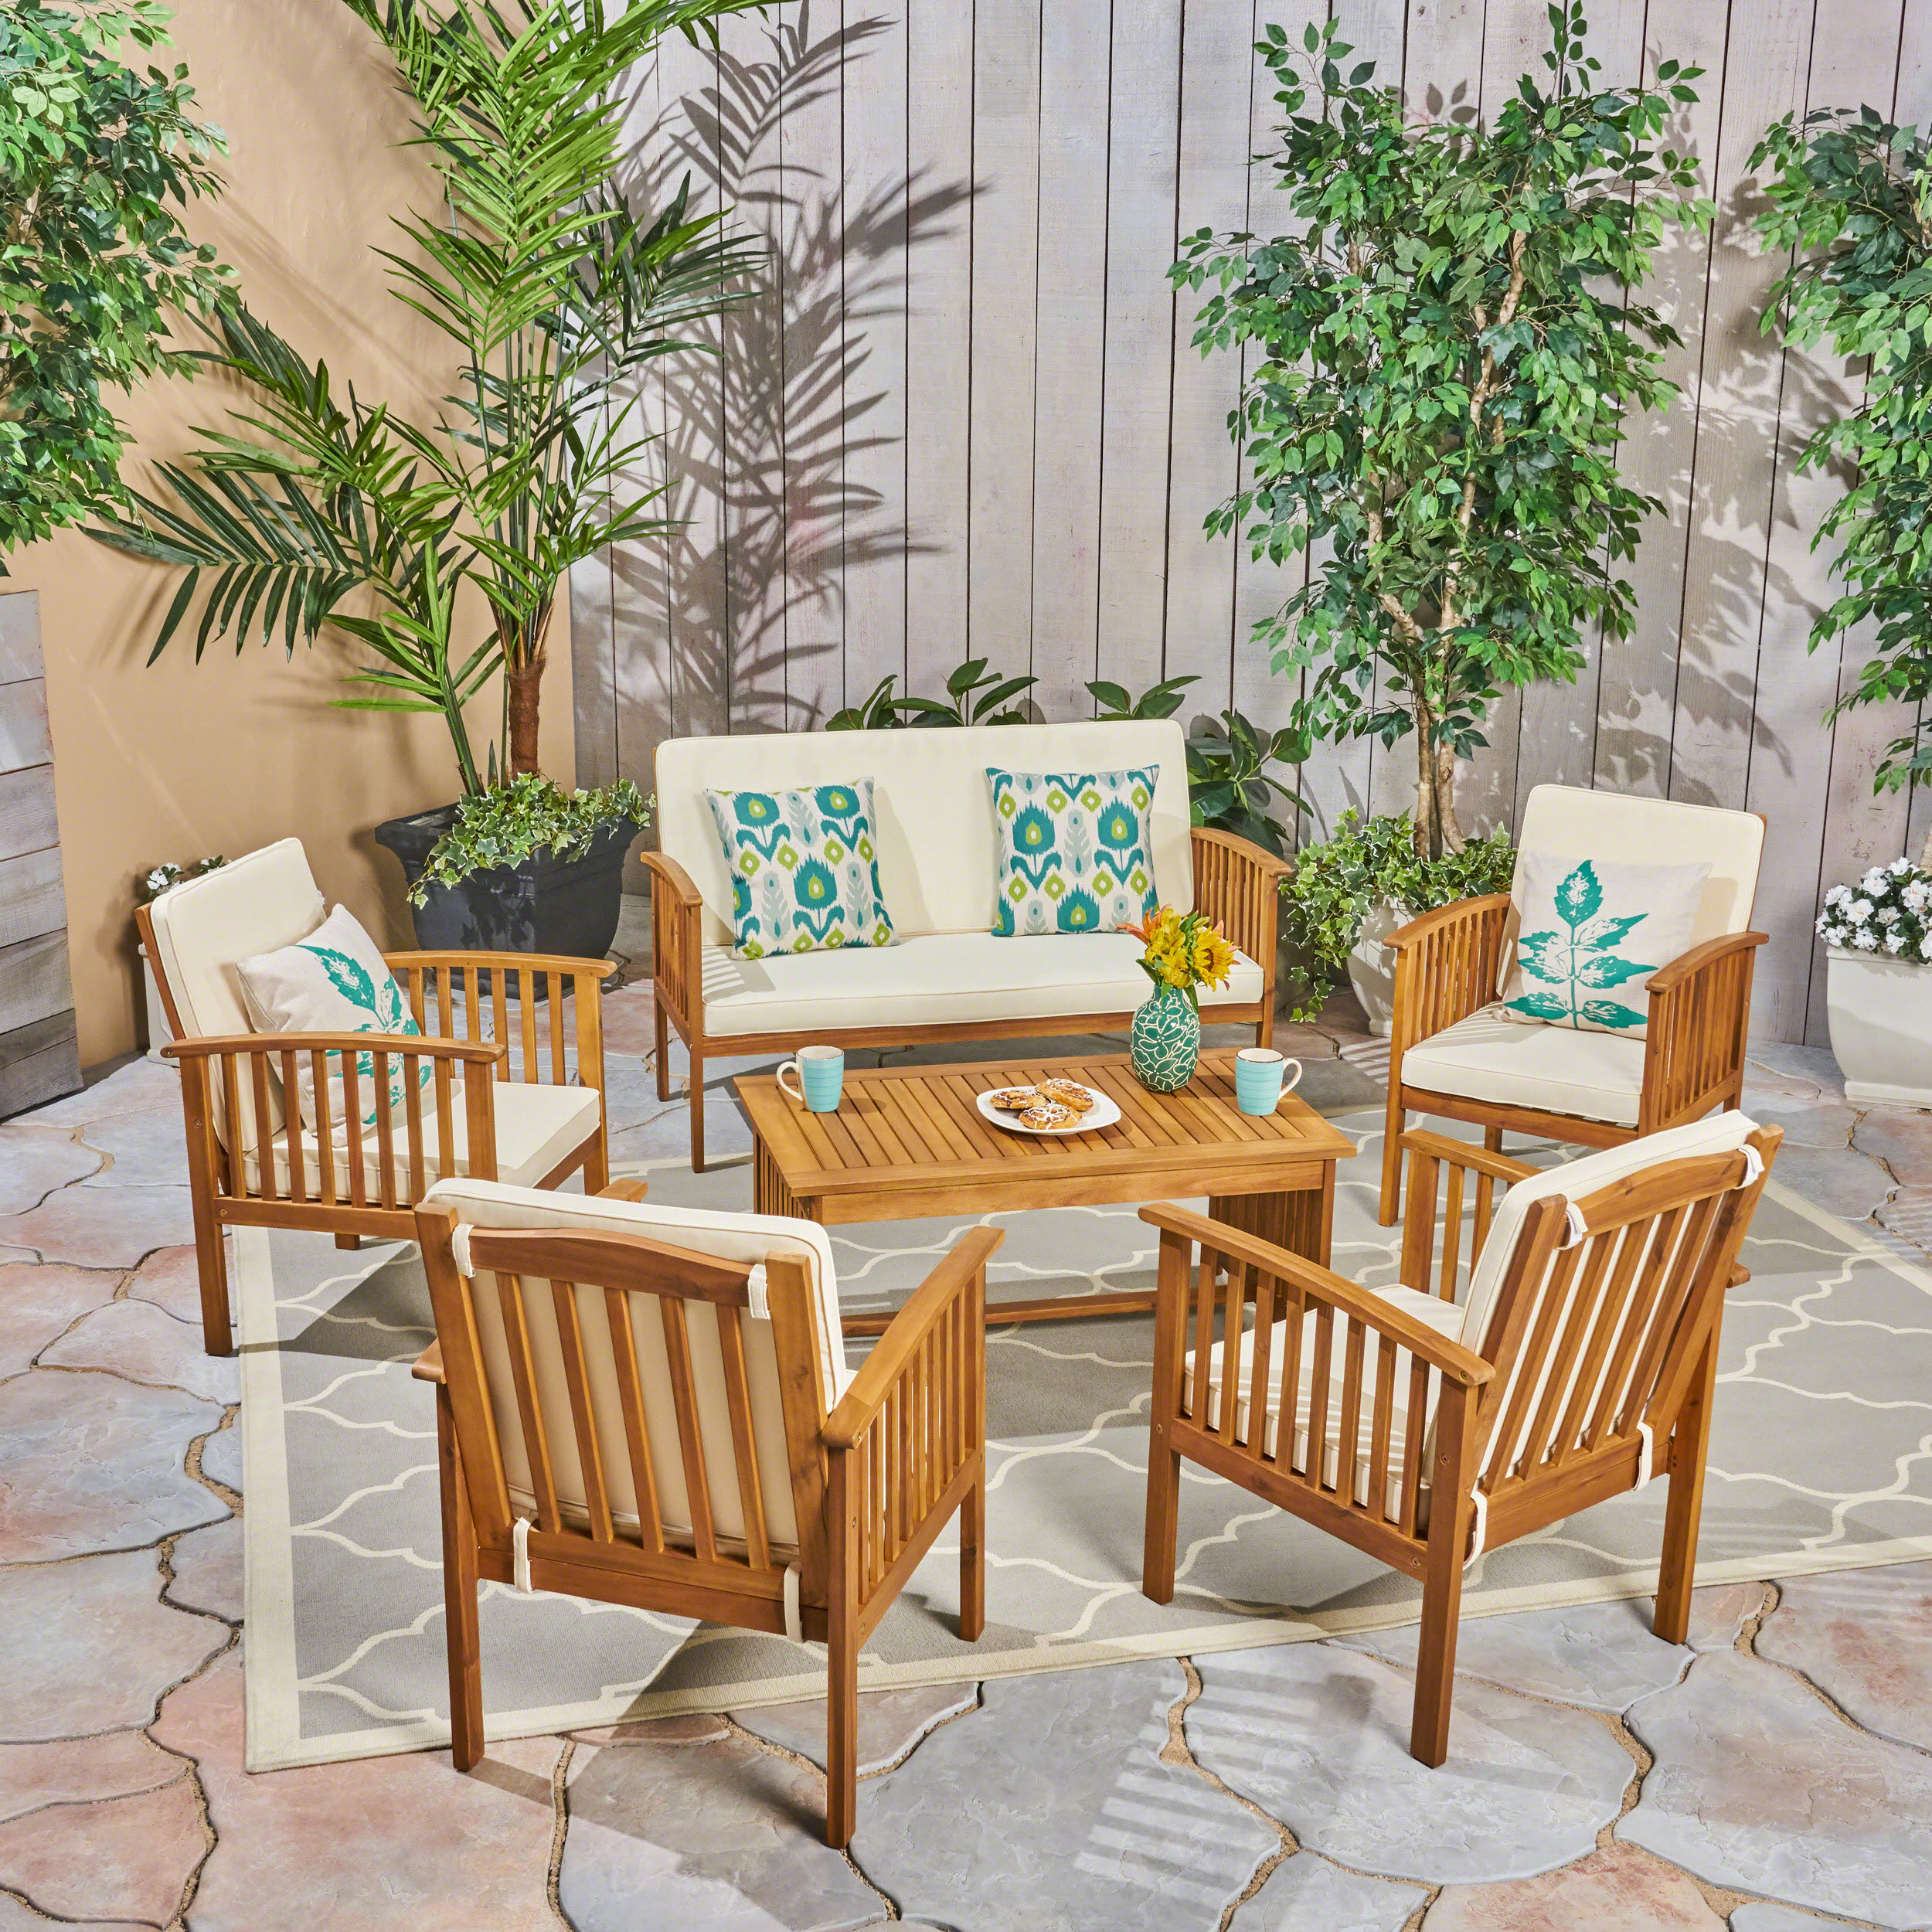 Brendon Outdoor 6 Piece Acacia Wood Chat Set with Cushions, Brown Patina, Dark Teal